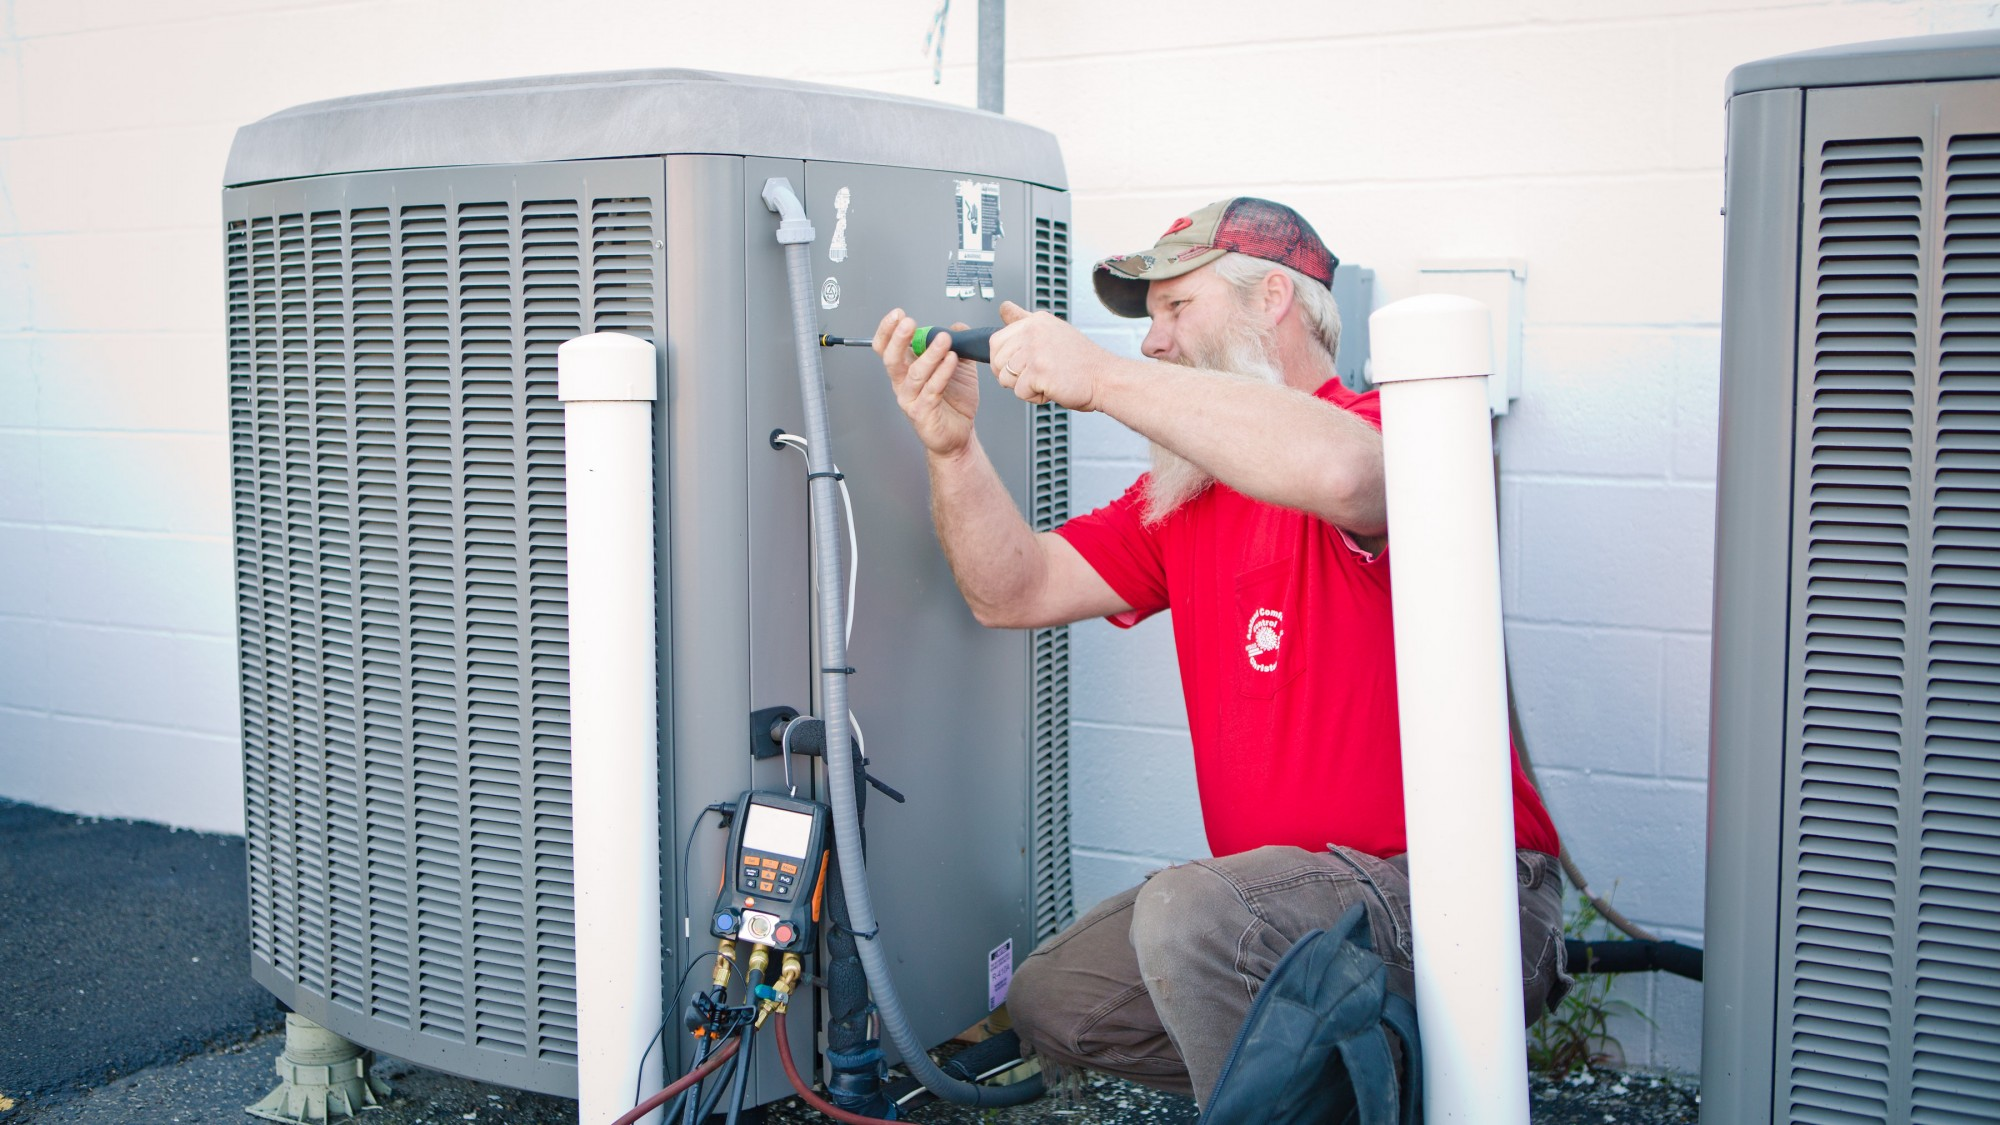 HVAC plumbing air conditioning ventilation heating maintenance with Ashland Comfort Control in Ashland, Ohio